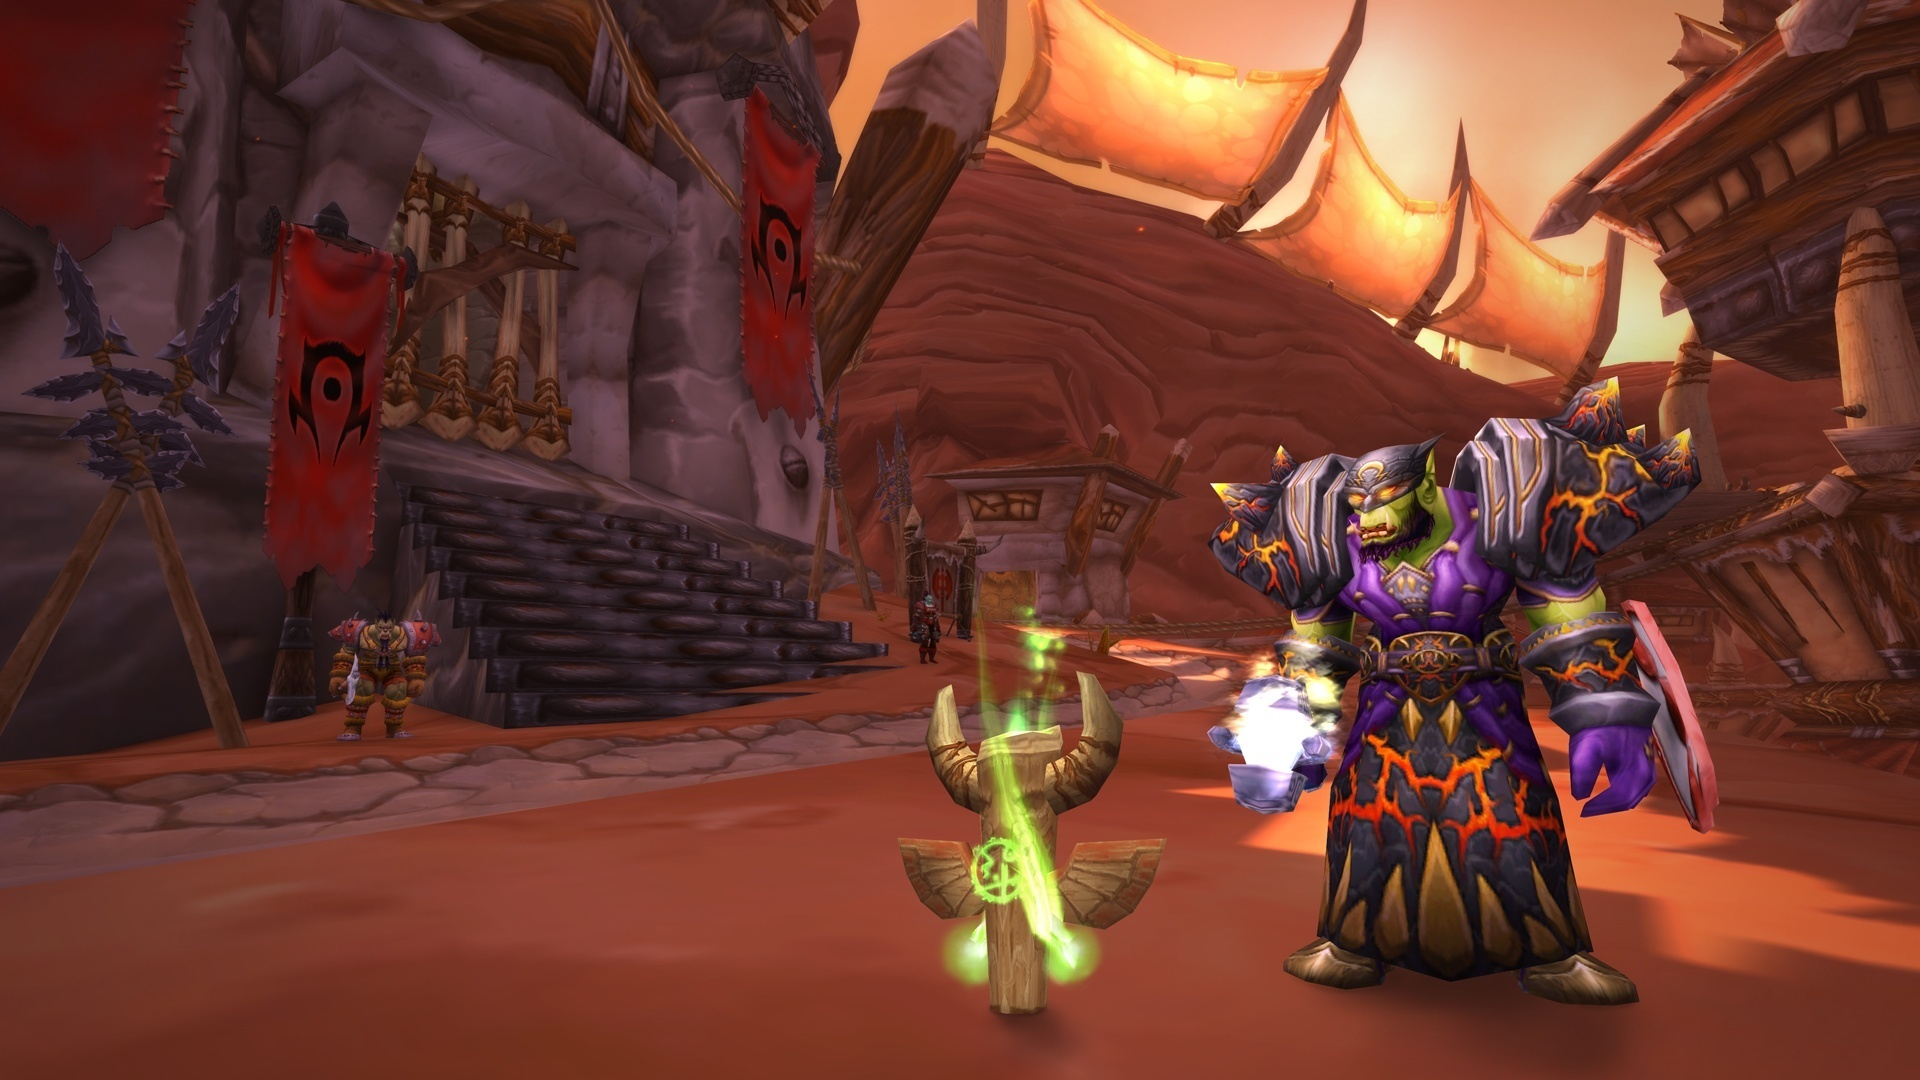 Blizzard Responds on Layering Abuse in Classic WoW - Wowhead